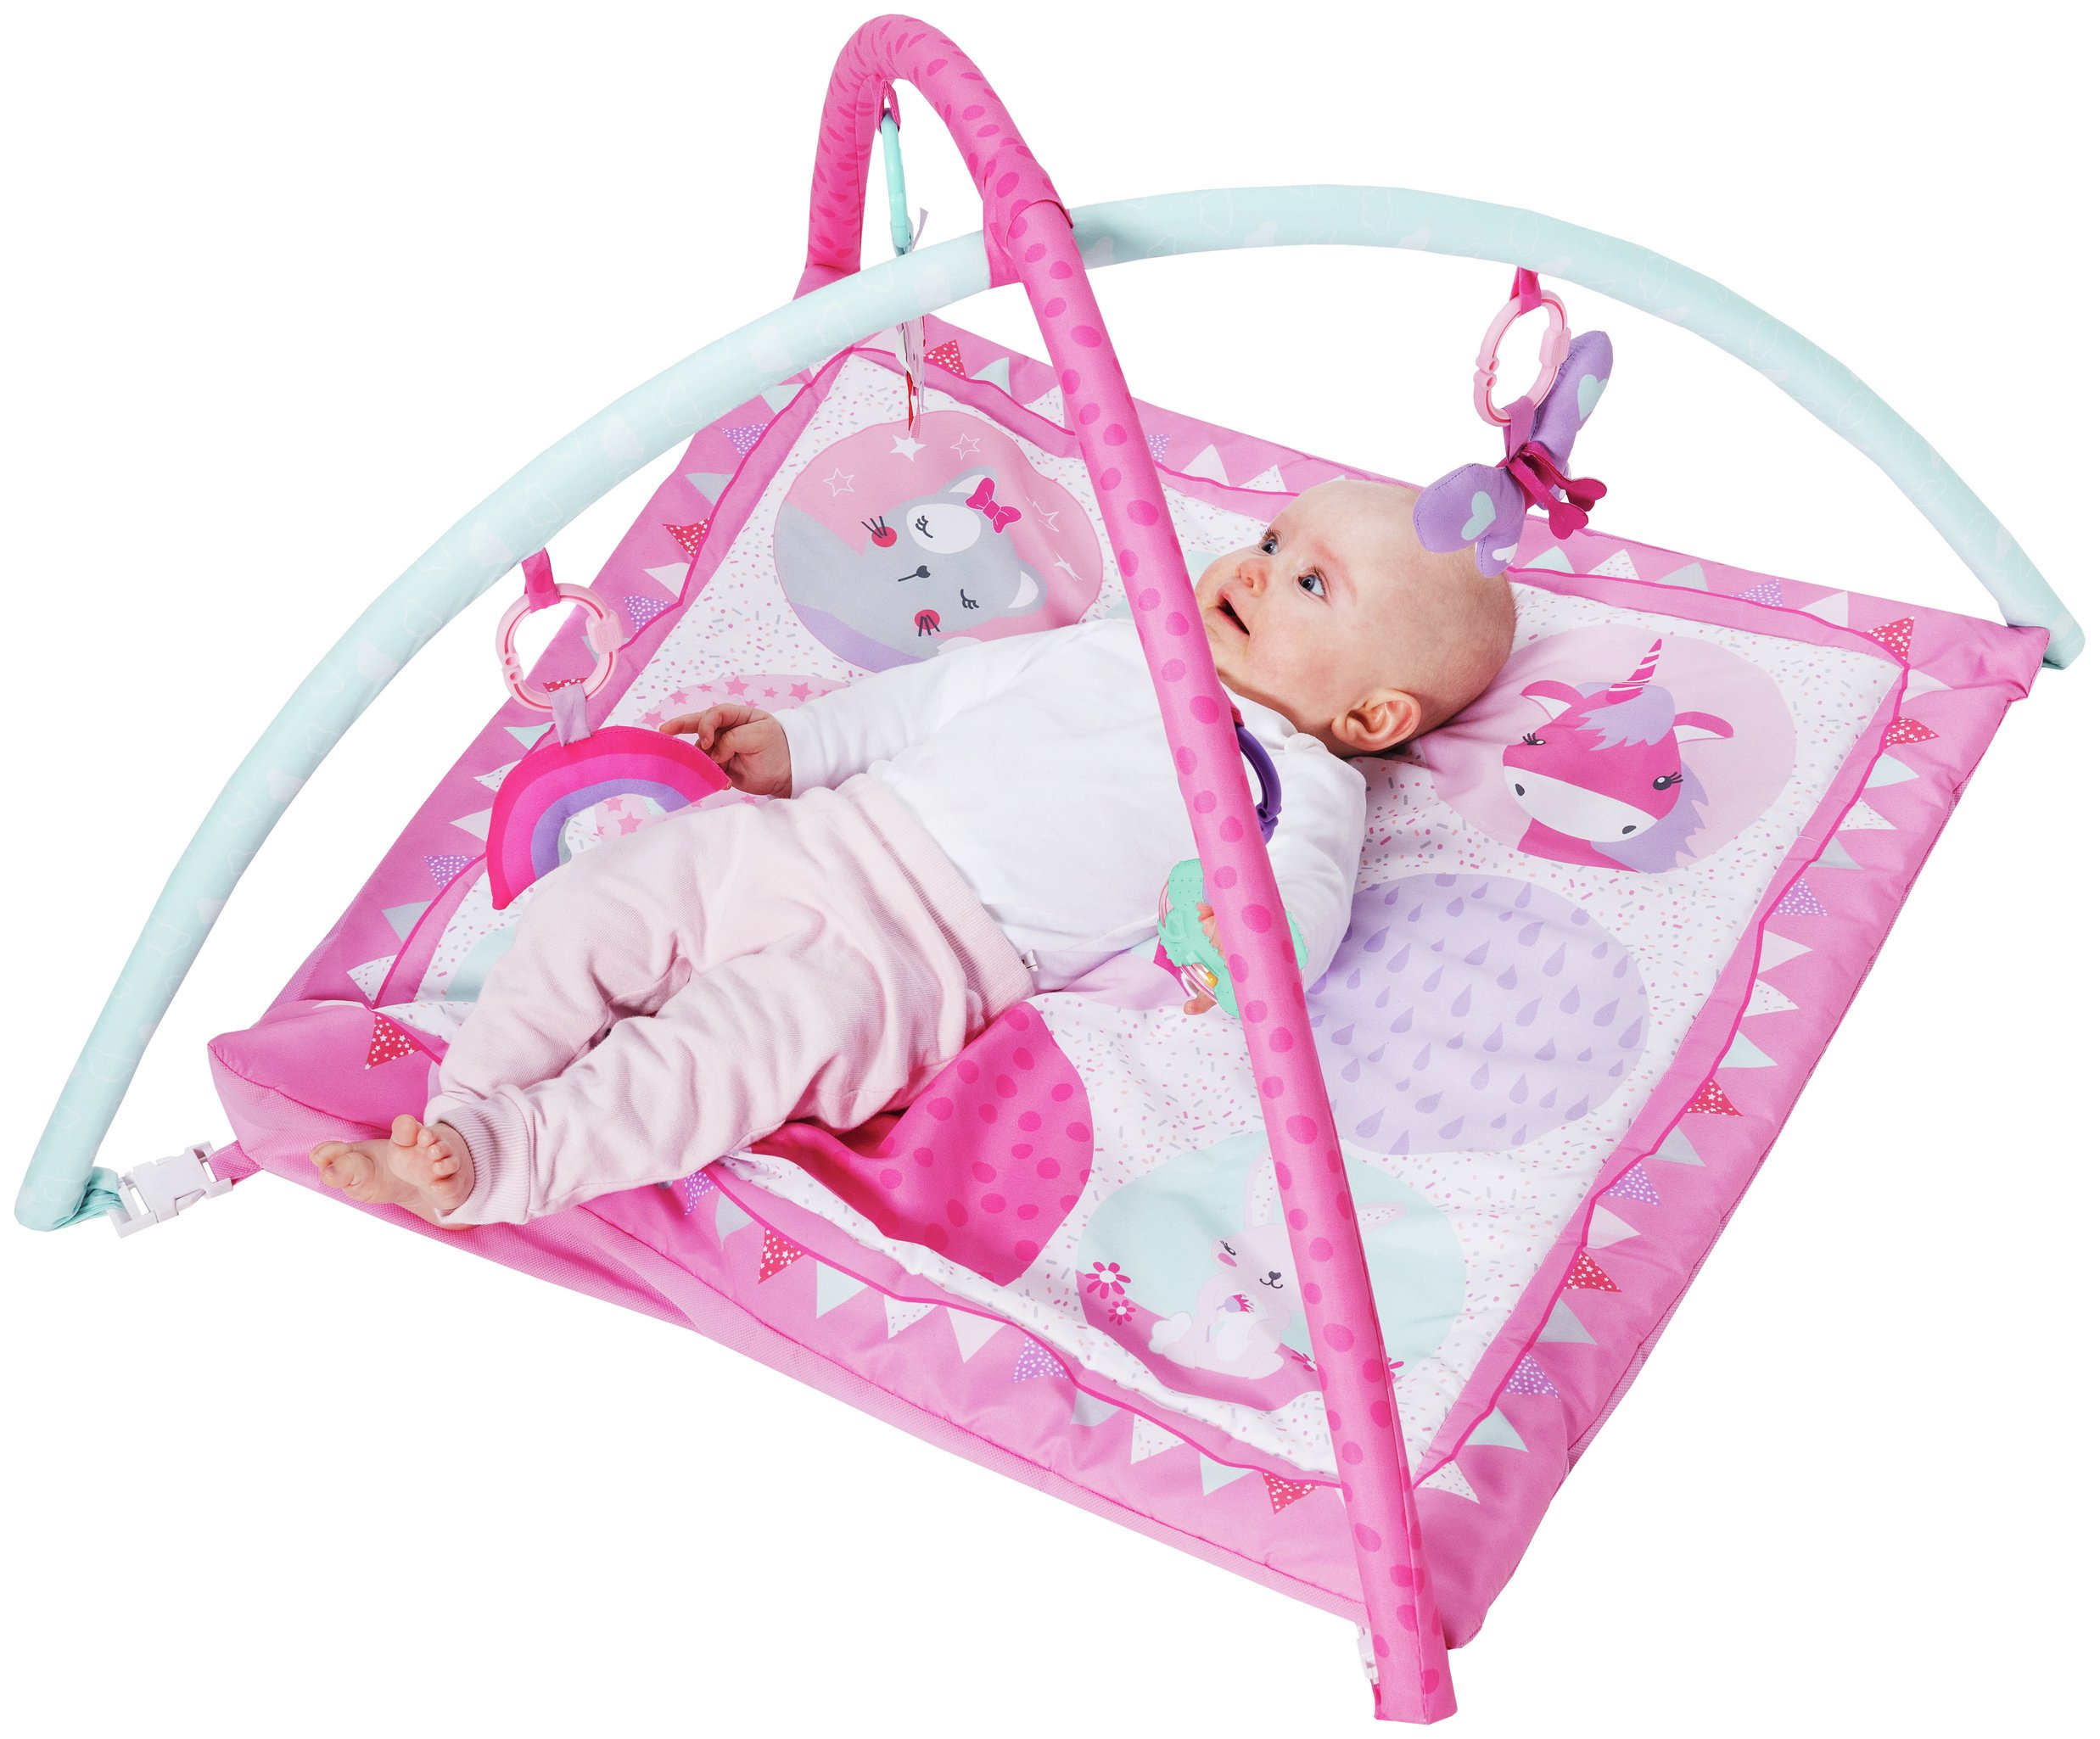 Chad Valley Baby Pink Dreamland Play Gym